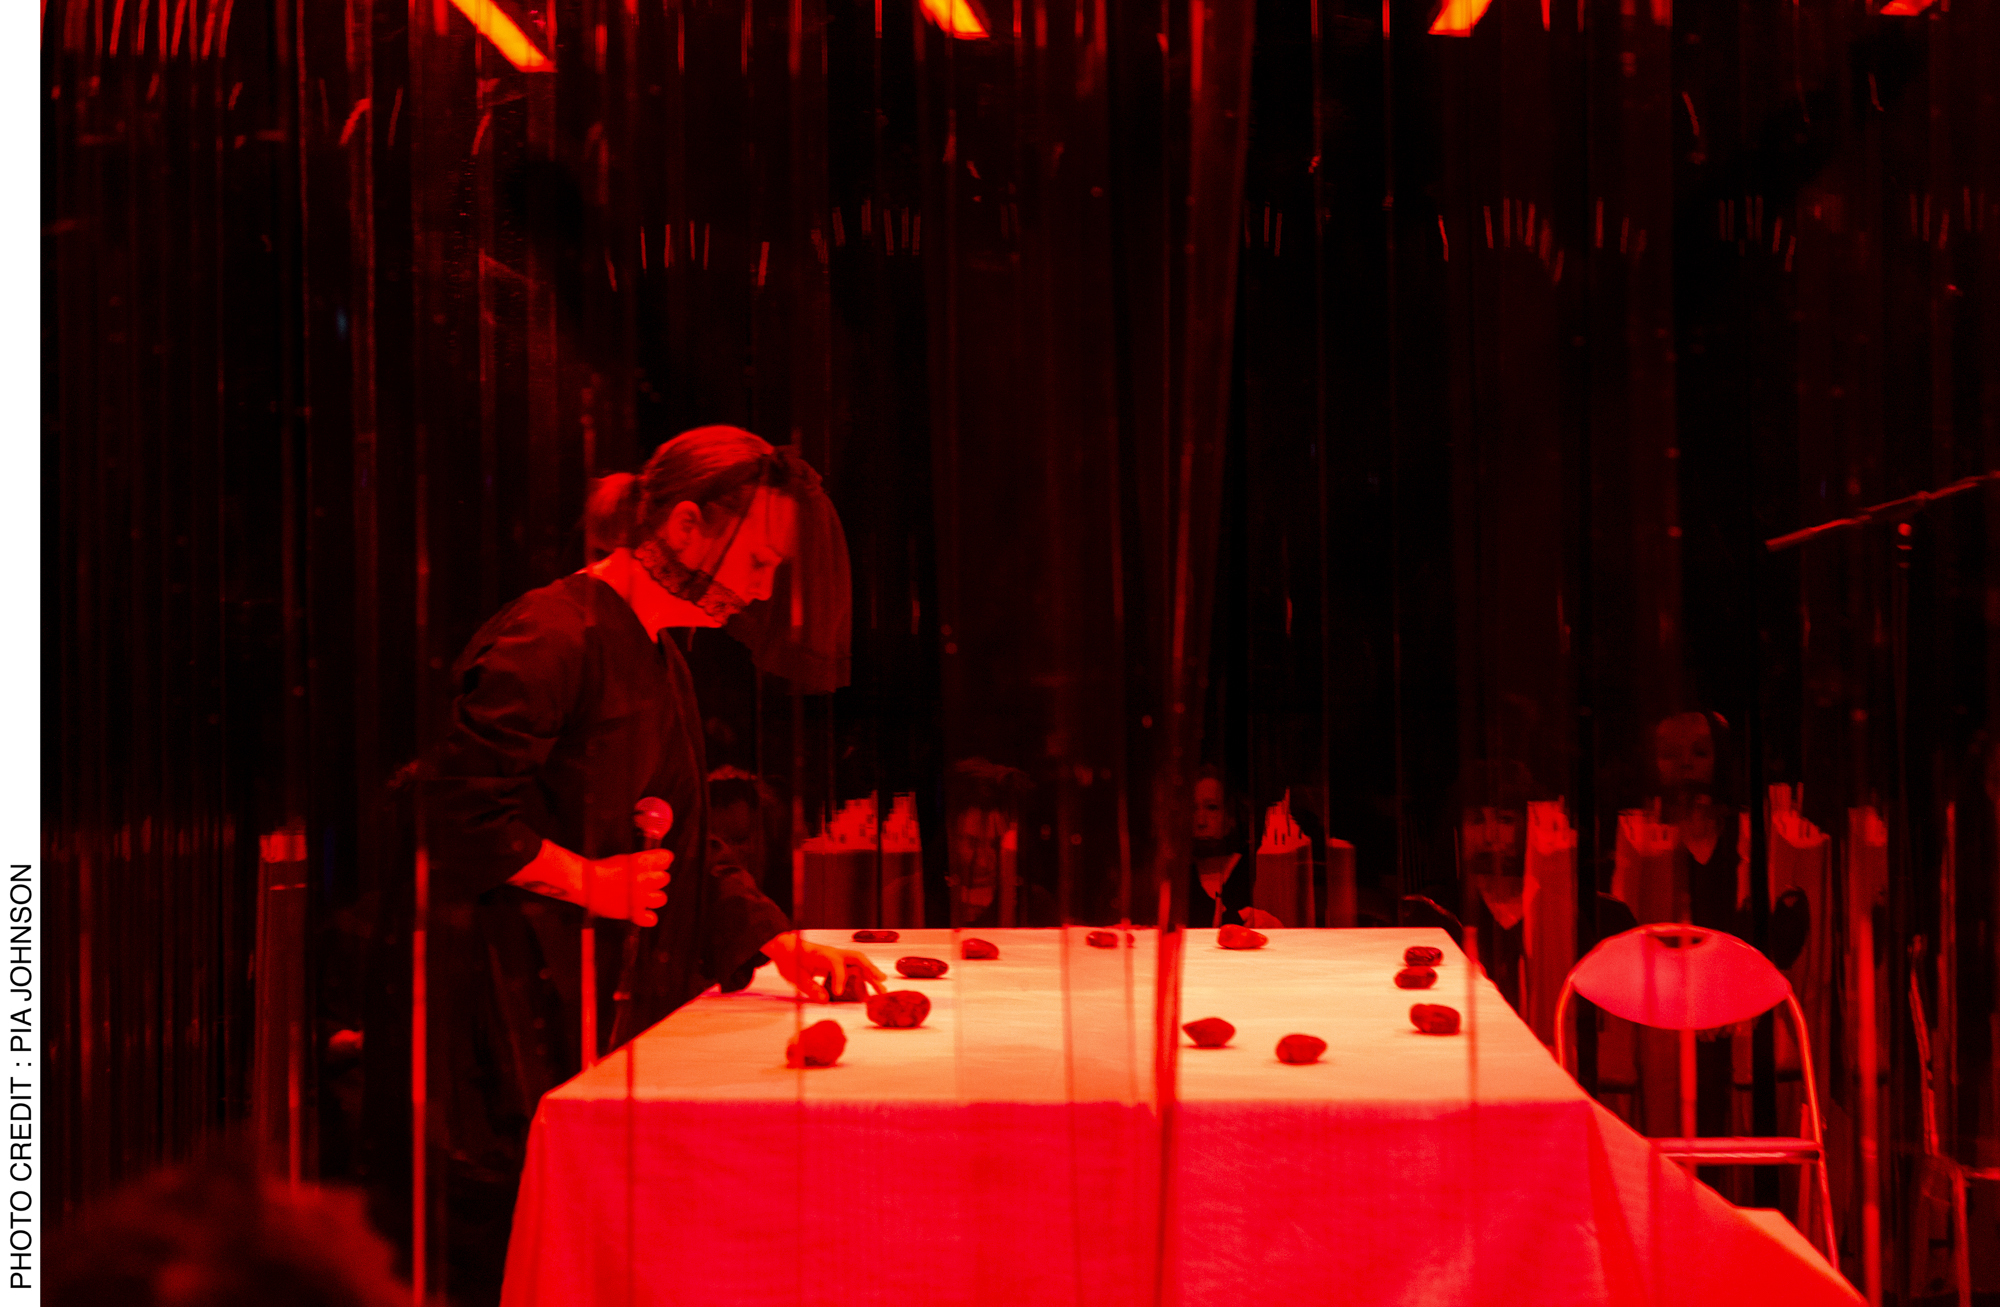 <p>Act 3, voice artist Jenny Barnes, who gives voice to the final possession, is surrounded by the seated choir as she touches stones placed on the platform/grave. Photo Credit: Pia&nbsp;Johnson.</p>